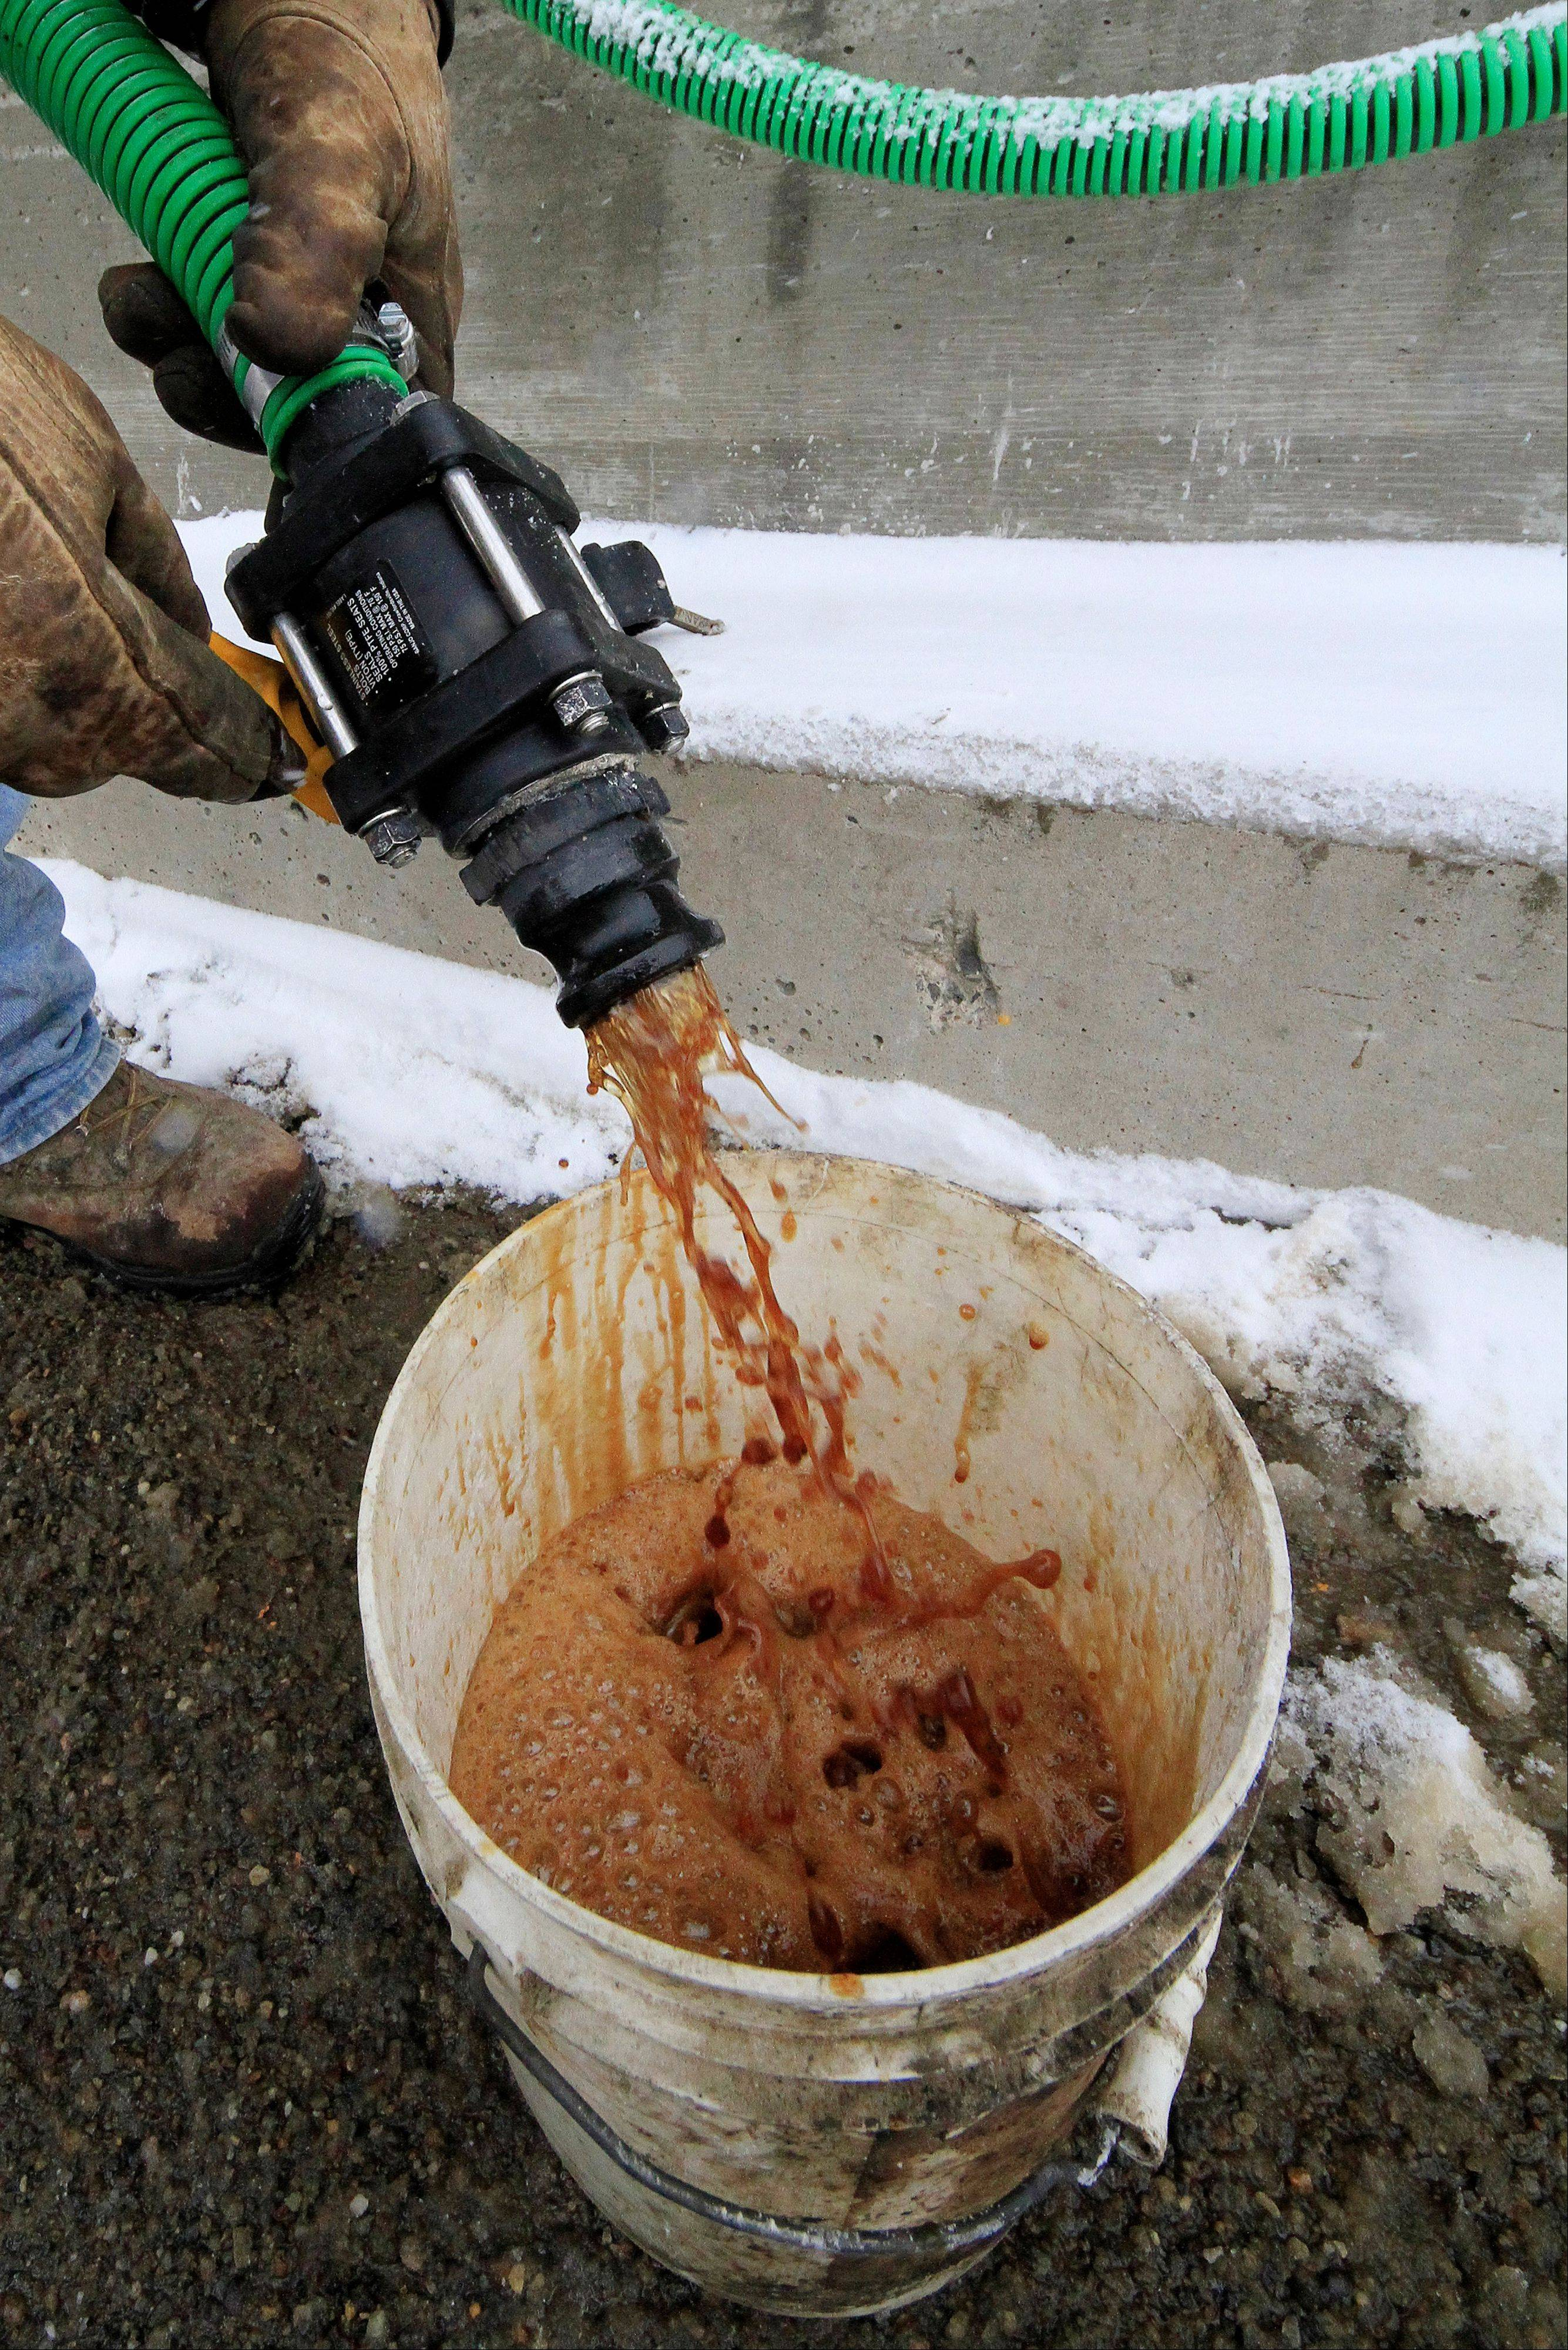 In a demonstration, a bucket is filled with beet juice at the Pennsylvania Department of Transportation�s Butler, Pa., maintenance facility, Monday. Because rock salt is largely ineffective below 16 degrees, road salt is mixed with additives, such as beet juice and cheese brine, to keep it working in temperatures as low as minus 25.